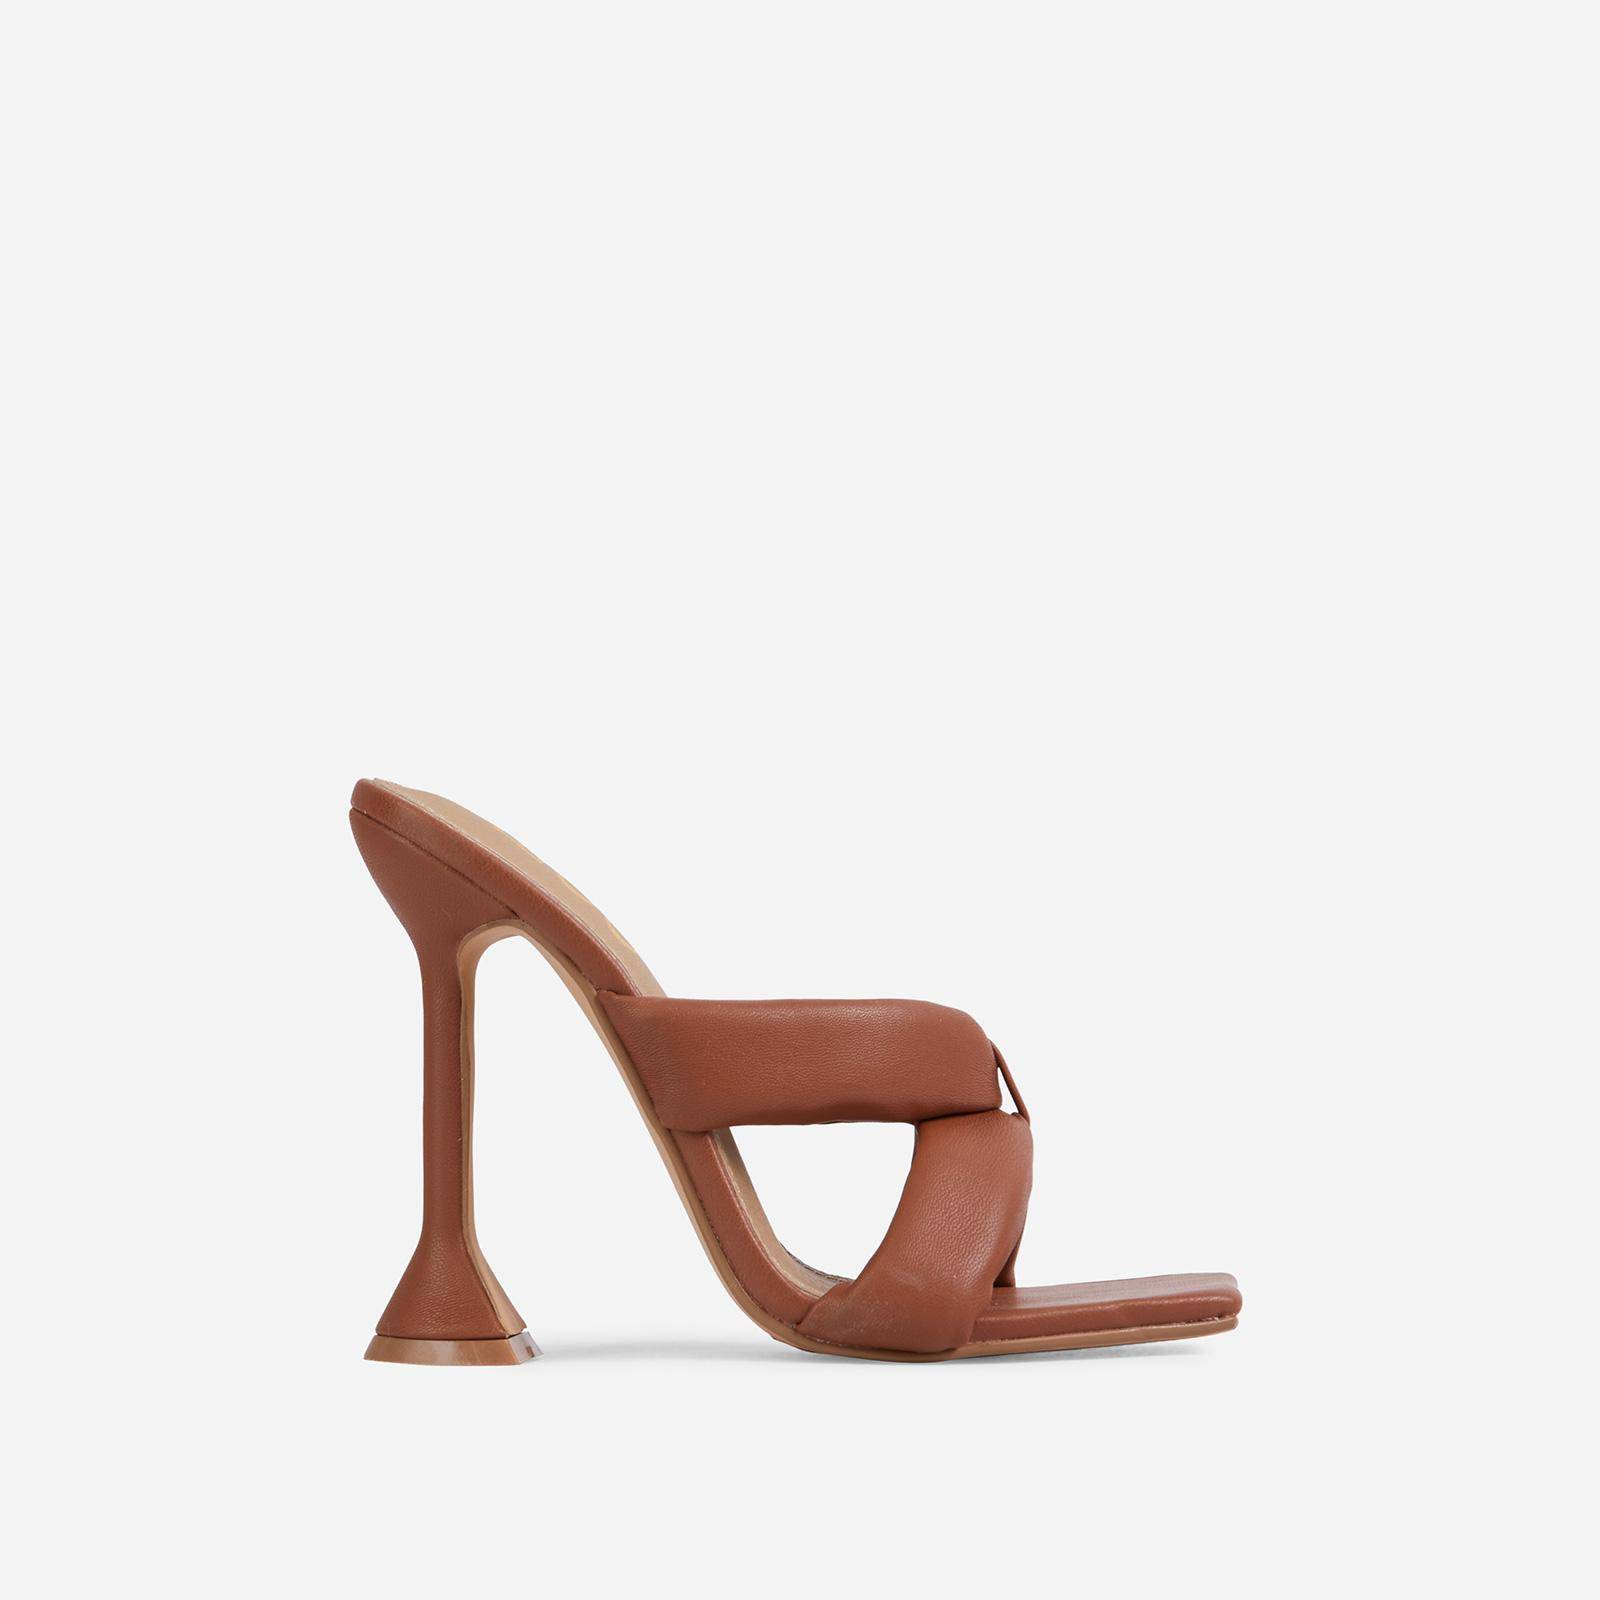 EGO Next-Level Square Toe Twisted Cross Strap Sculptured Heel Mule In Tan Brown Faux Leather, Brown  - female - Size: 10